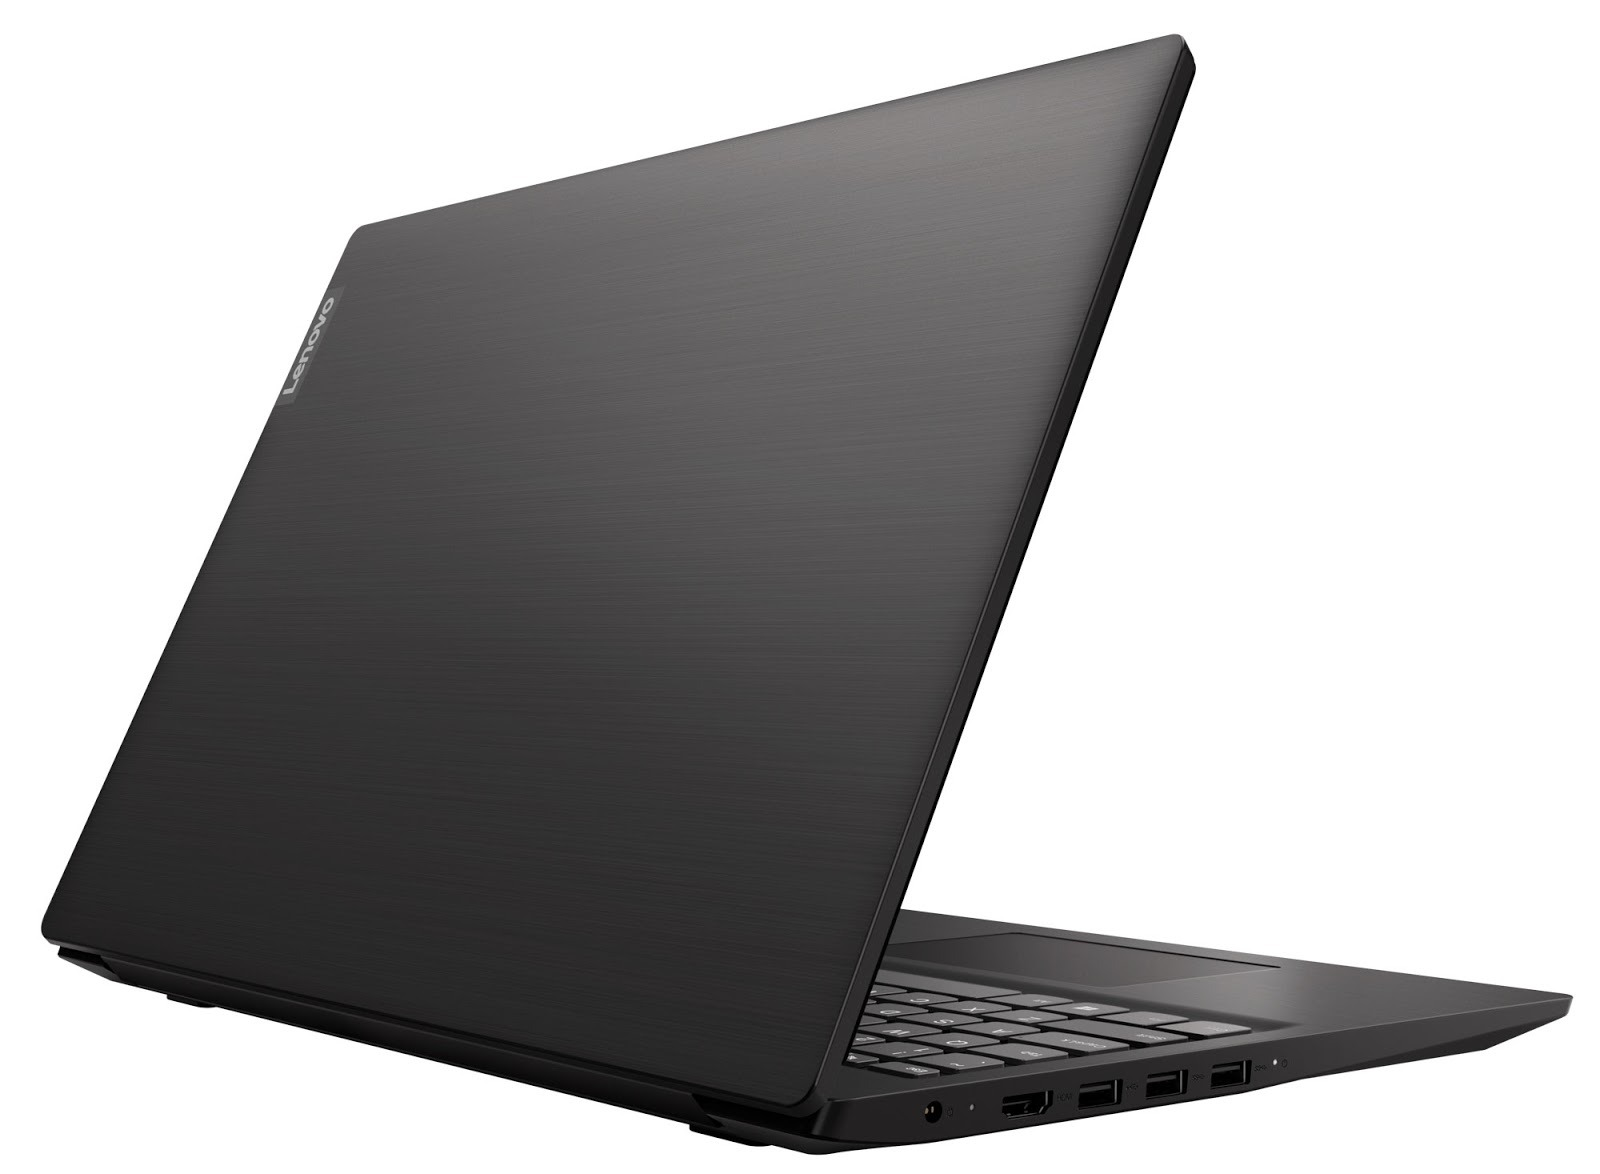 Фото 1. Ноутбук Lenovo ideapad S145-15AST (81N30059RE)